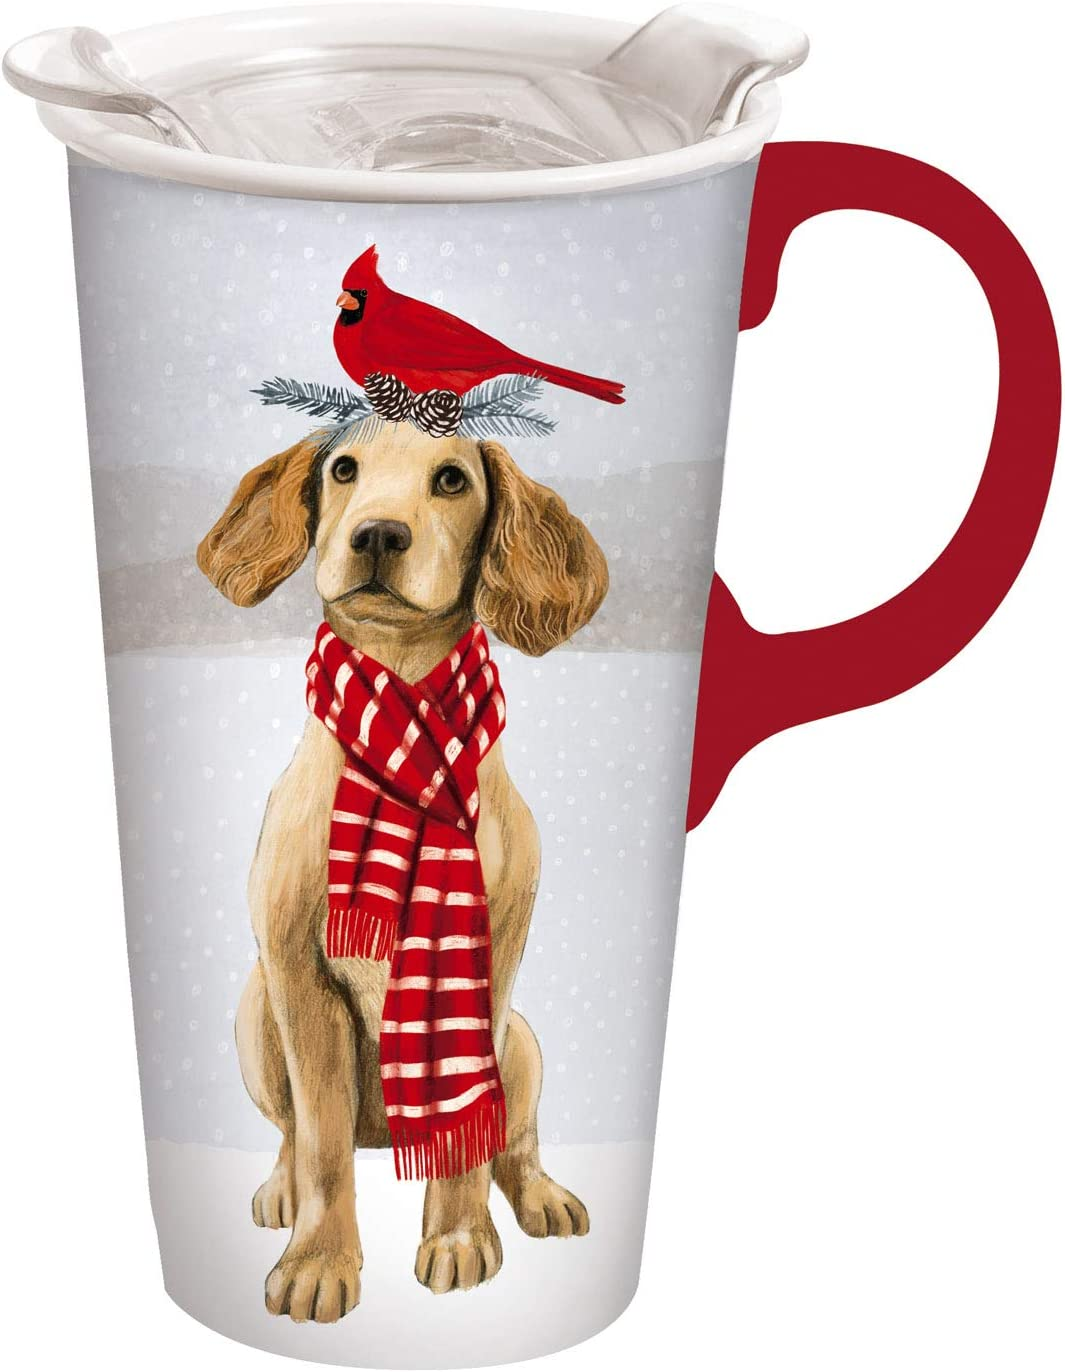 Cypress Home Beautiful Christmas Dog Ceramic Travel Cup with Tritan Lid and Matching Box - 4 x 5 x 7 Inches Indoor/Outdoor home goods For Kitchens, Parties and Homes